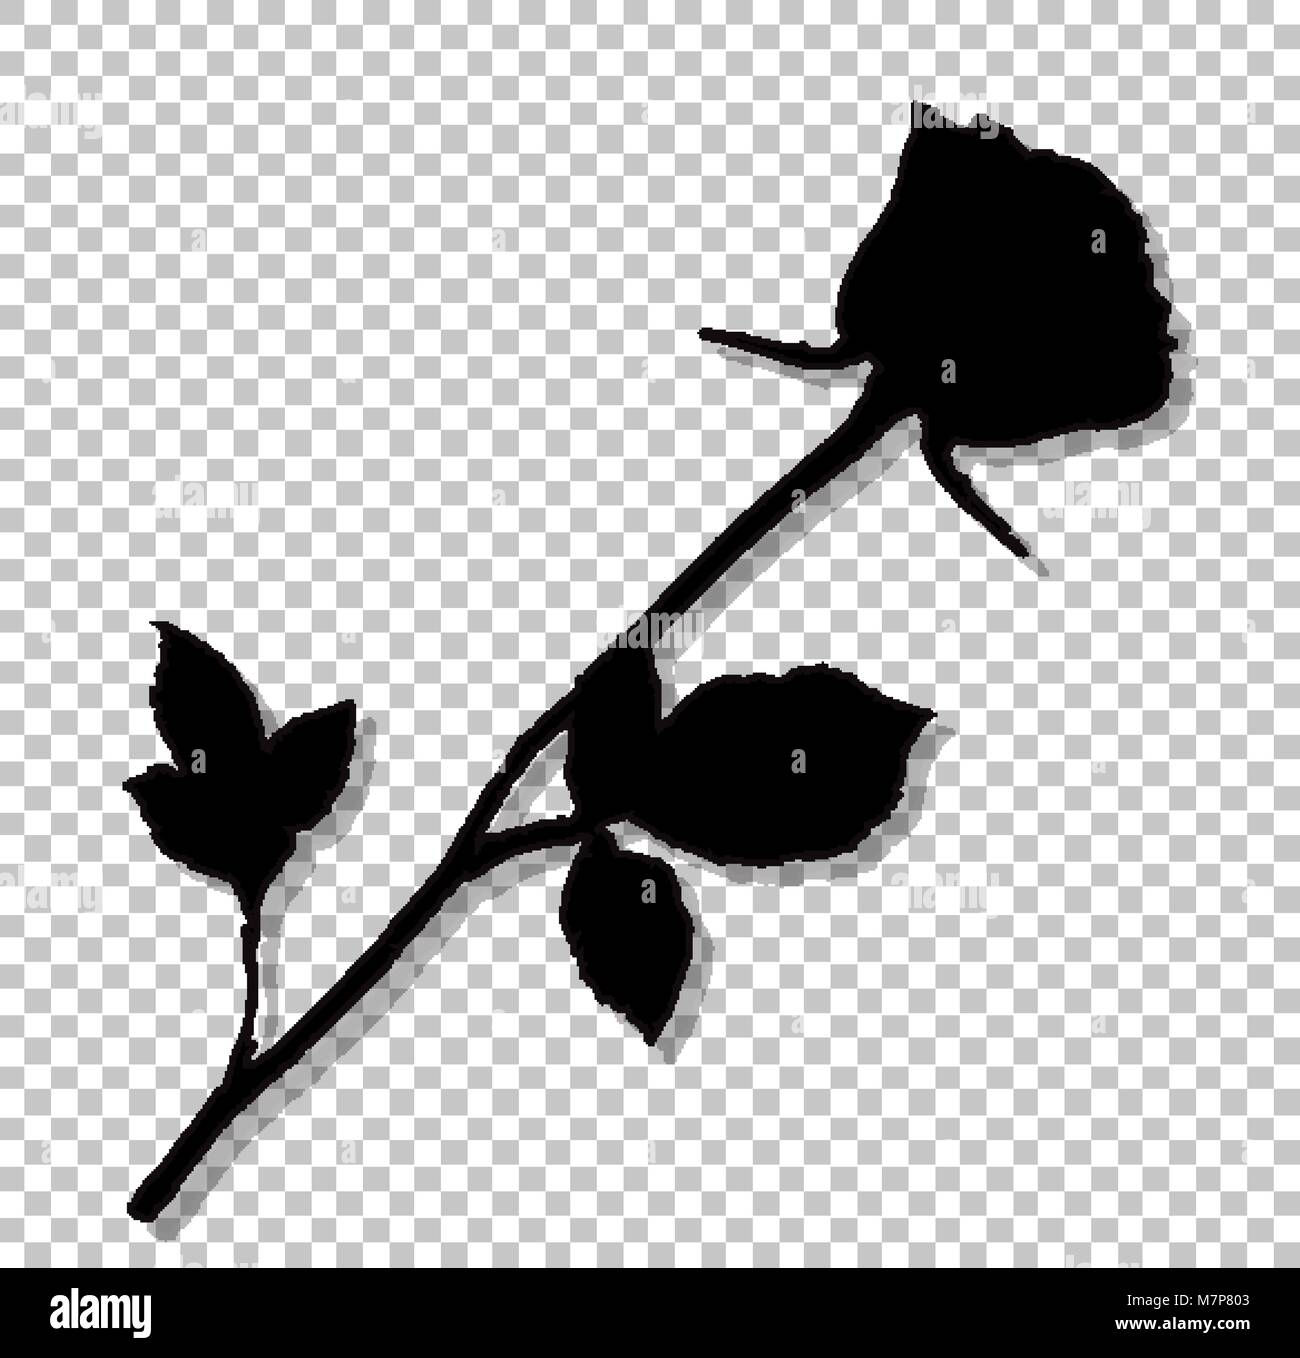 ac157c098 Black silhouette of rose flower isolated on transparent background.  Beautiful bud of rose on long stem. Monochrome vector illustration, sign,  symbol,